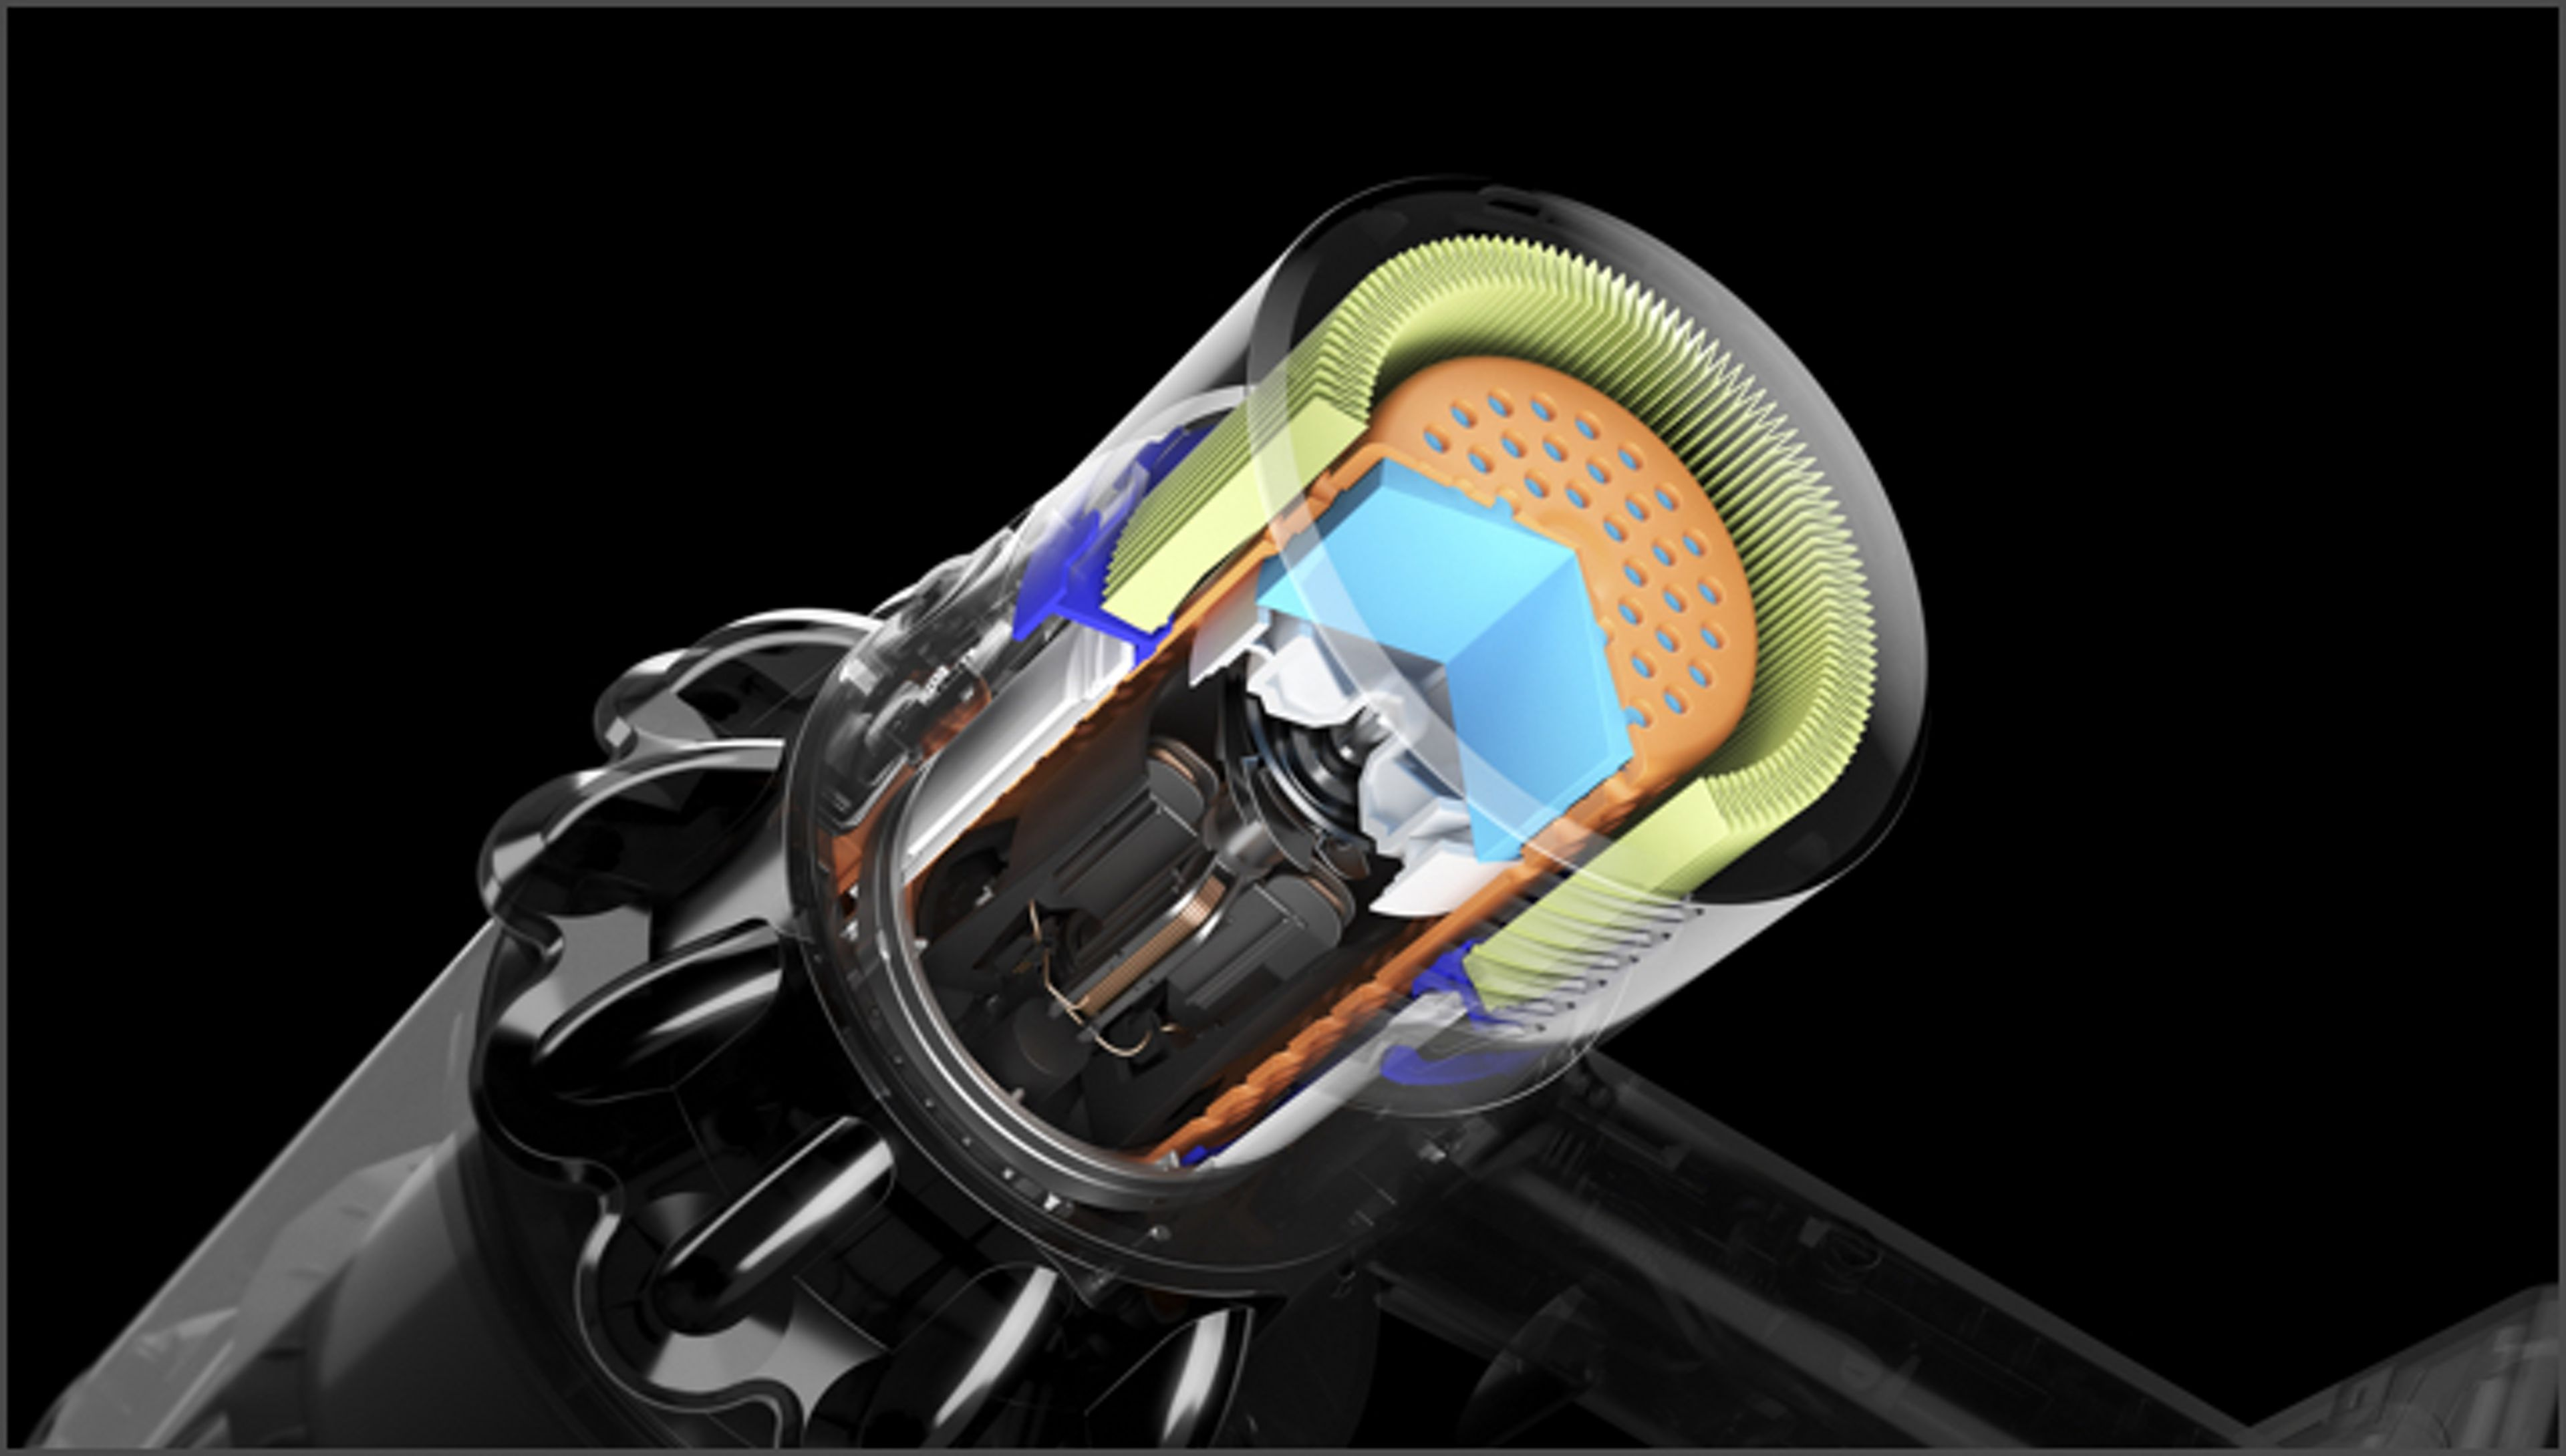 Cutaway of Dyson V11™ vacuum filter showing soundproofing